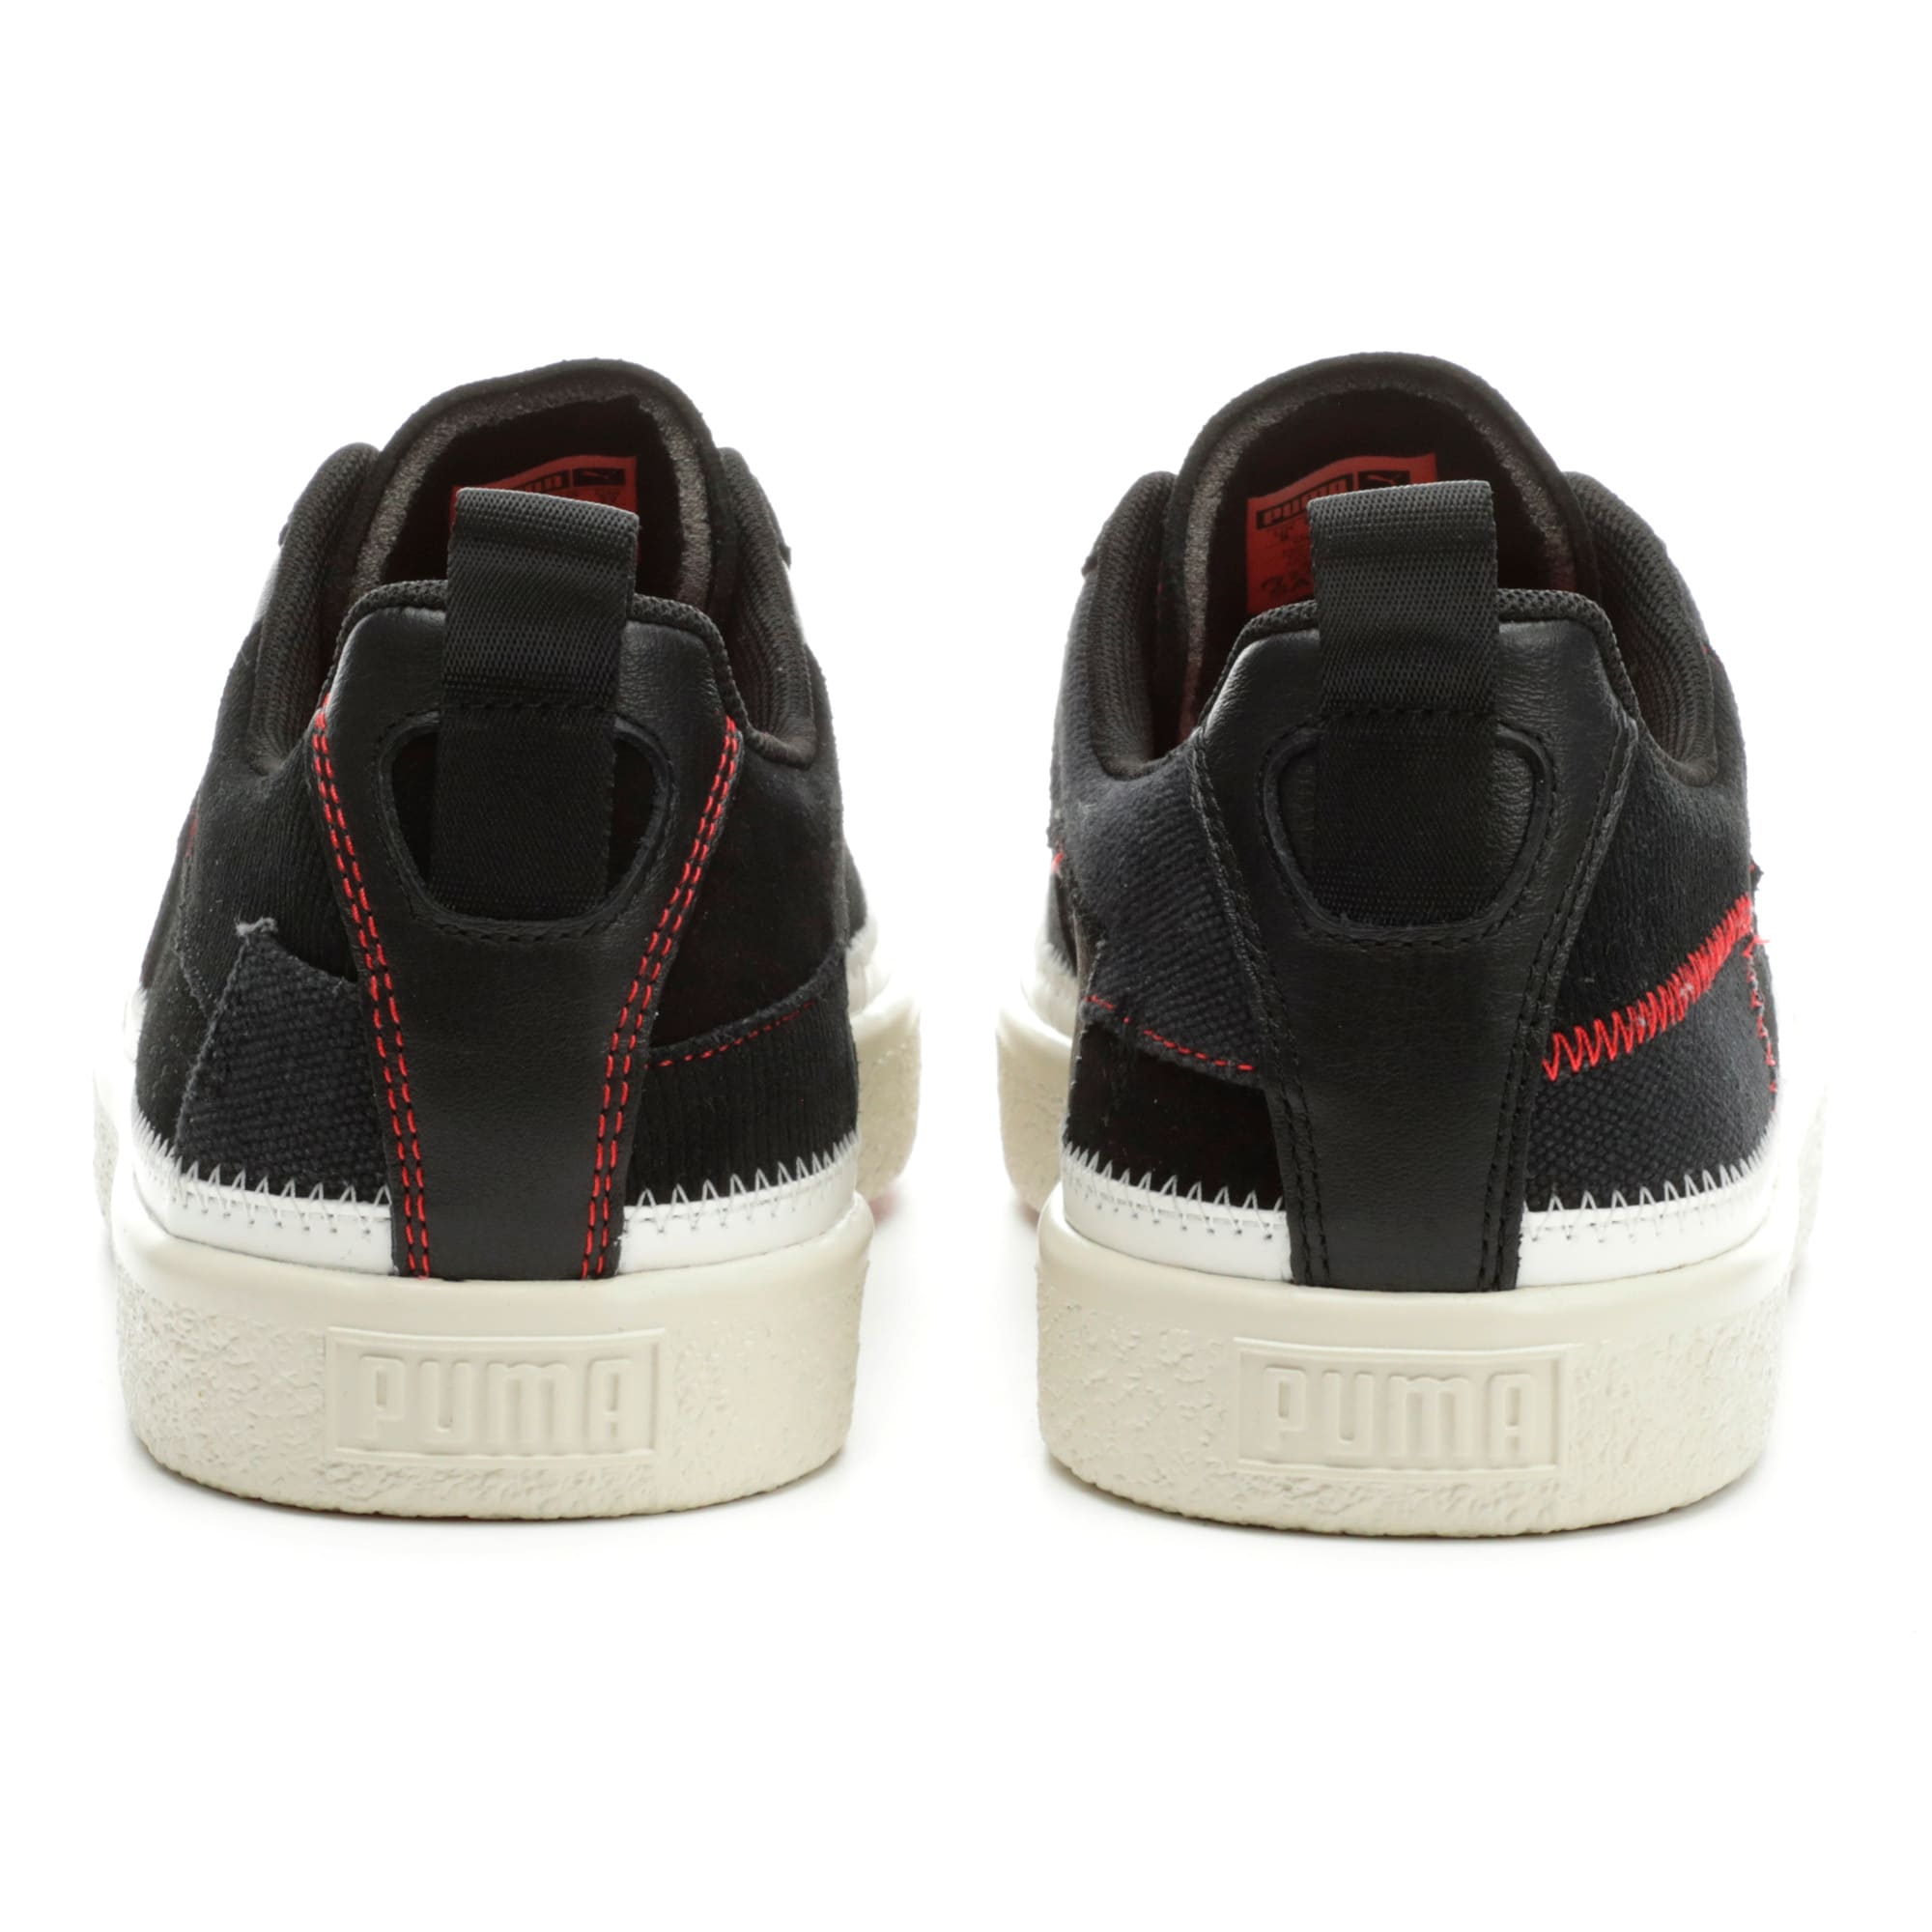 Thumbnail 3 of Clyde Reform Trainers, Black-Whisper White- Red, medium